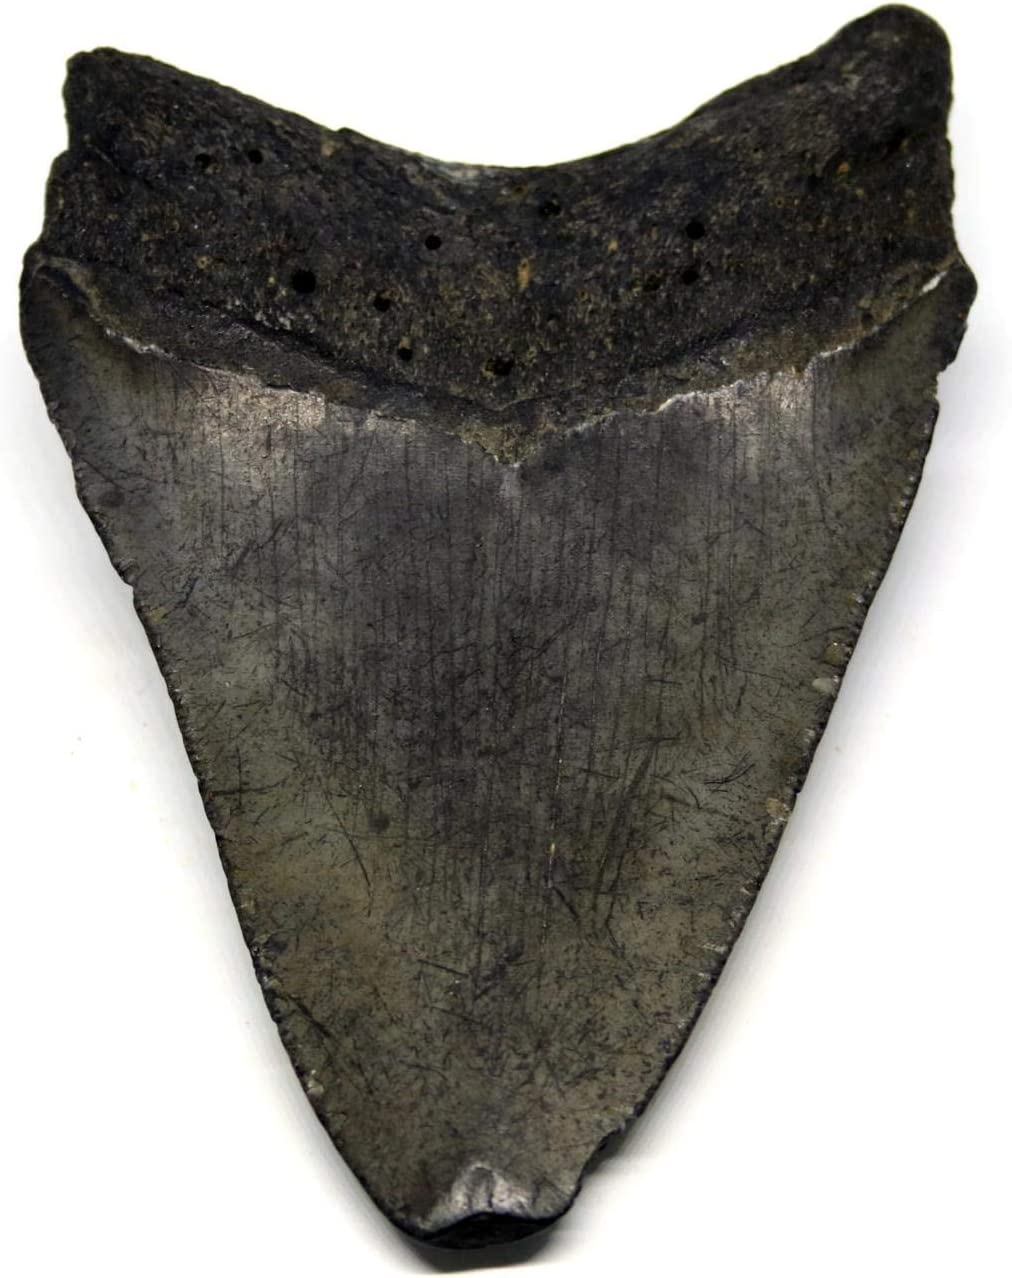 Megalodon Tooth Fossil Shark 3.837 inches Up to 25 Million Years Old #15584 11o